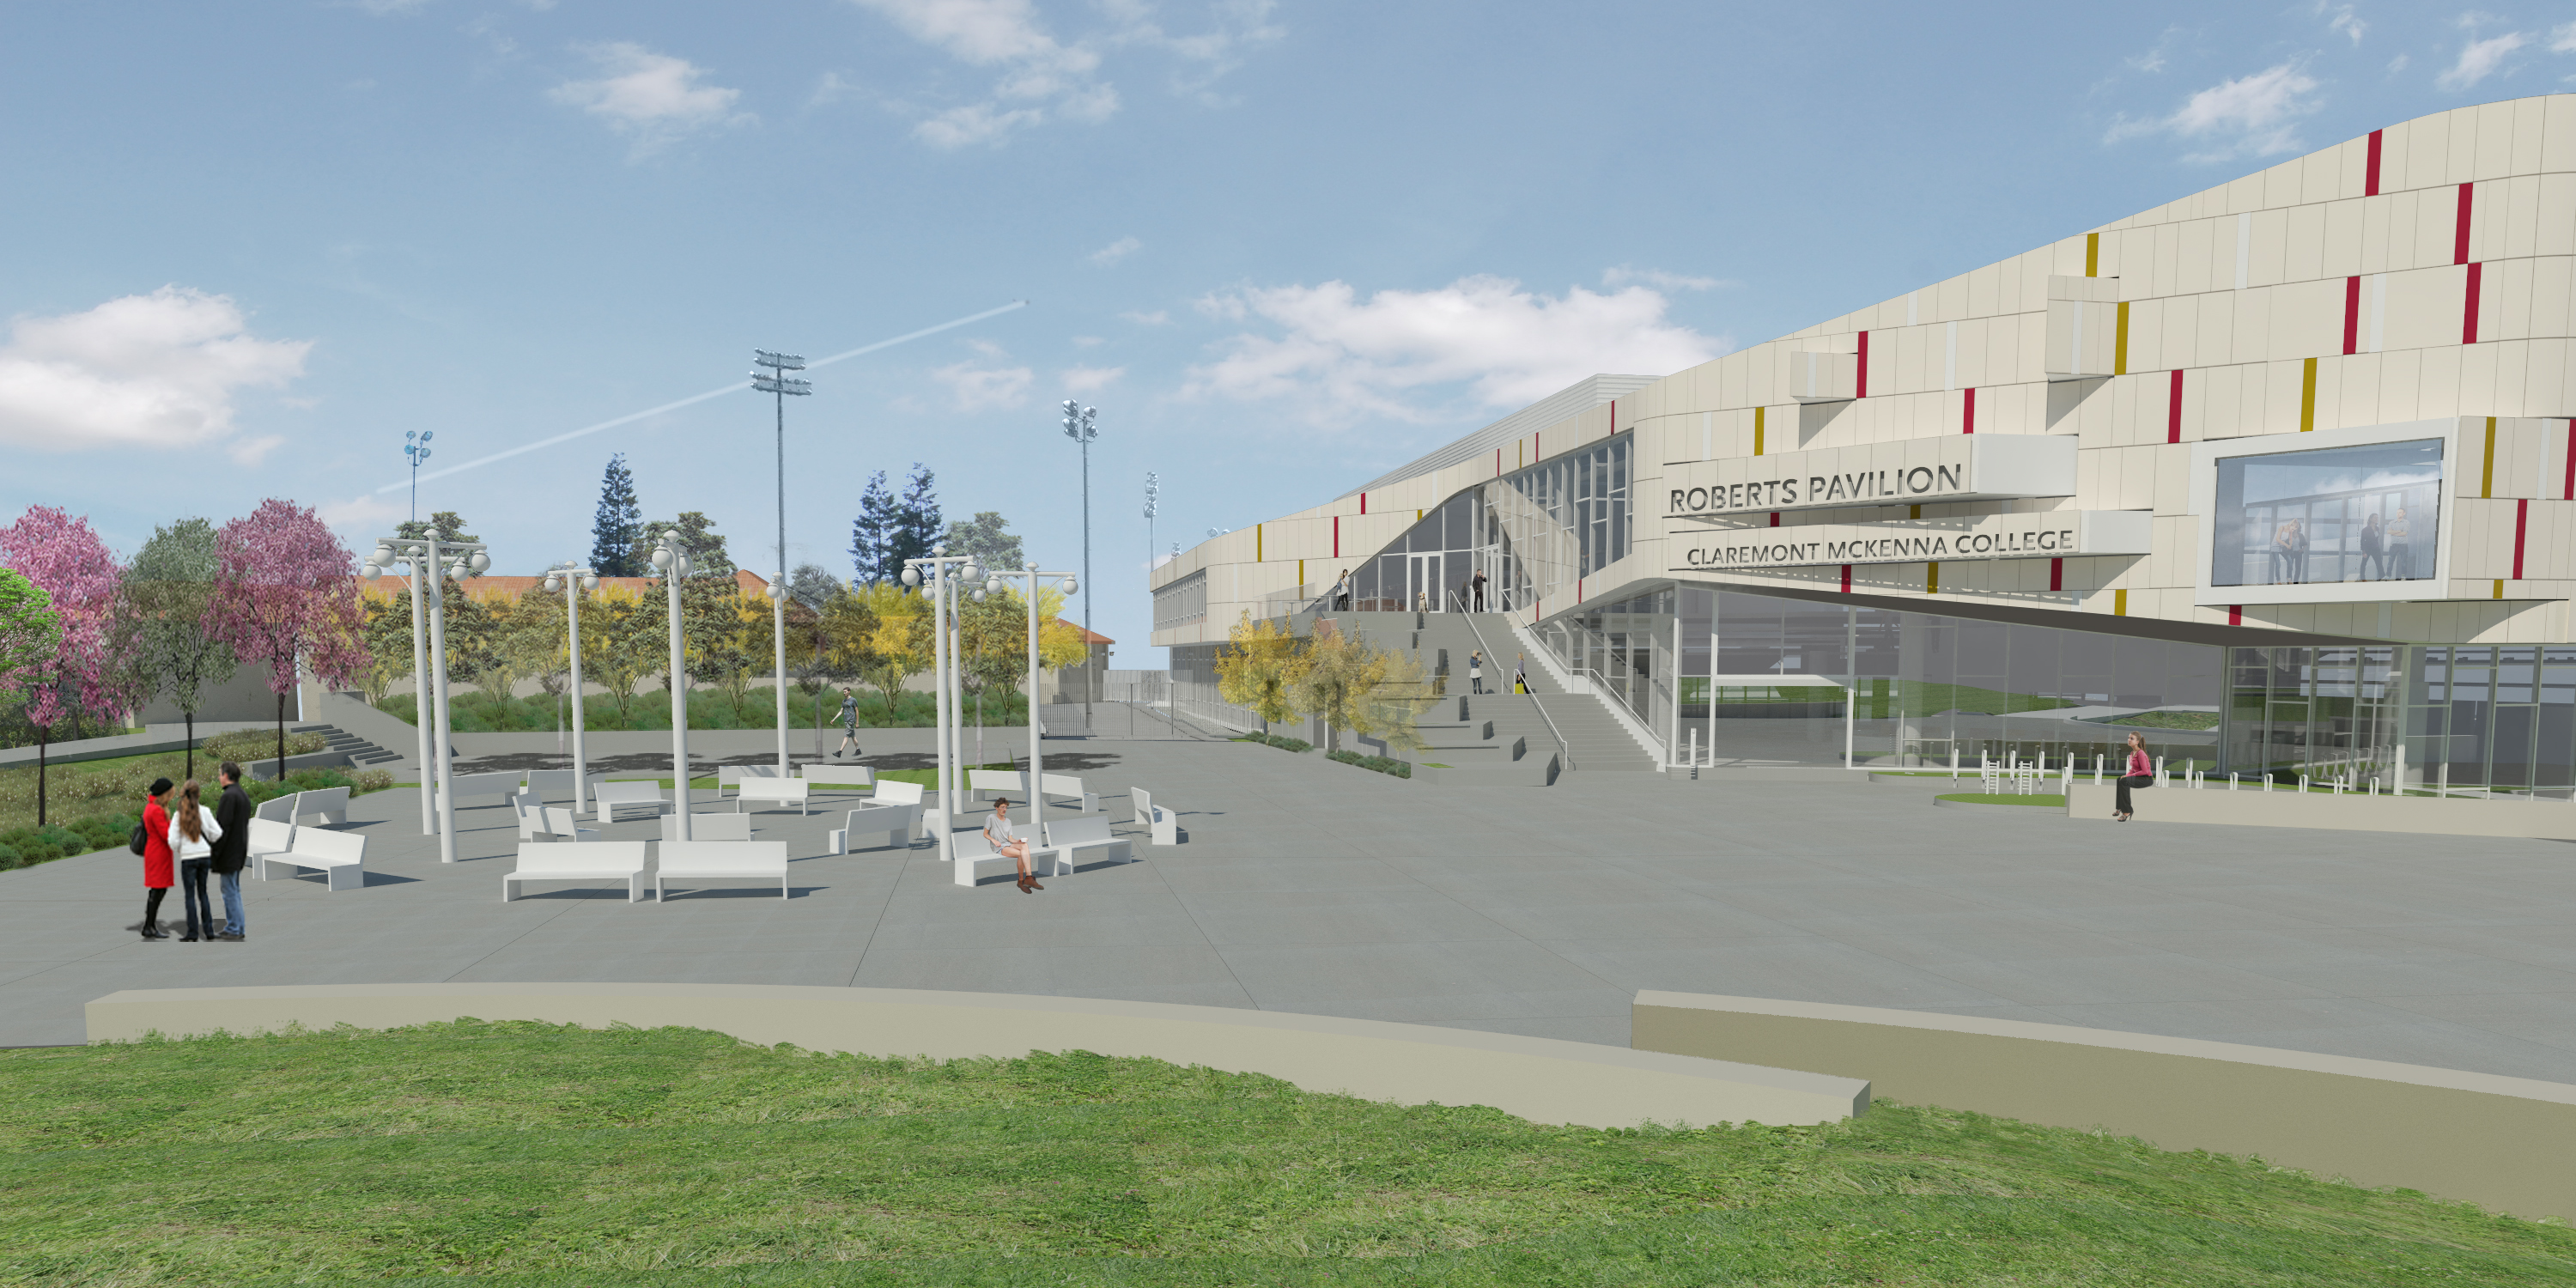 MEET IN THE MIDDLE: Artist rendering of Burden's installation in front of the Roberts Pavilion.